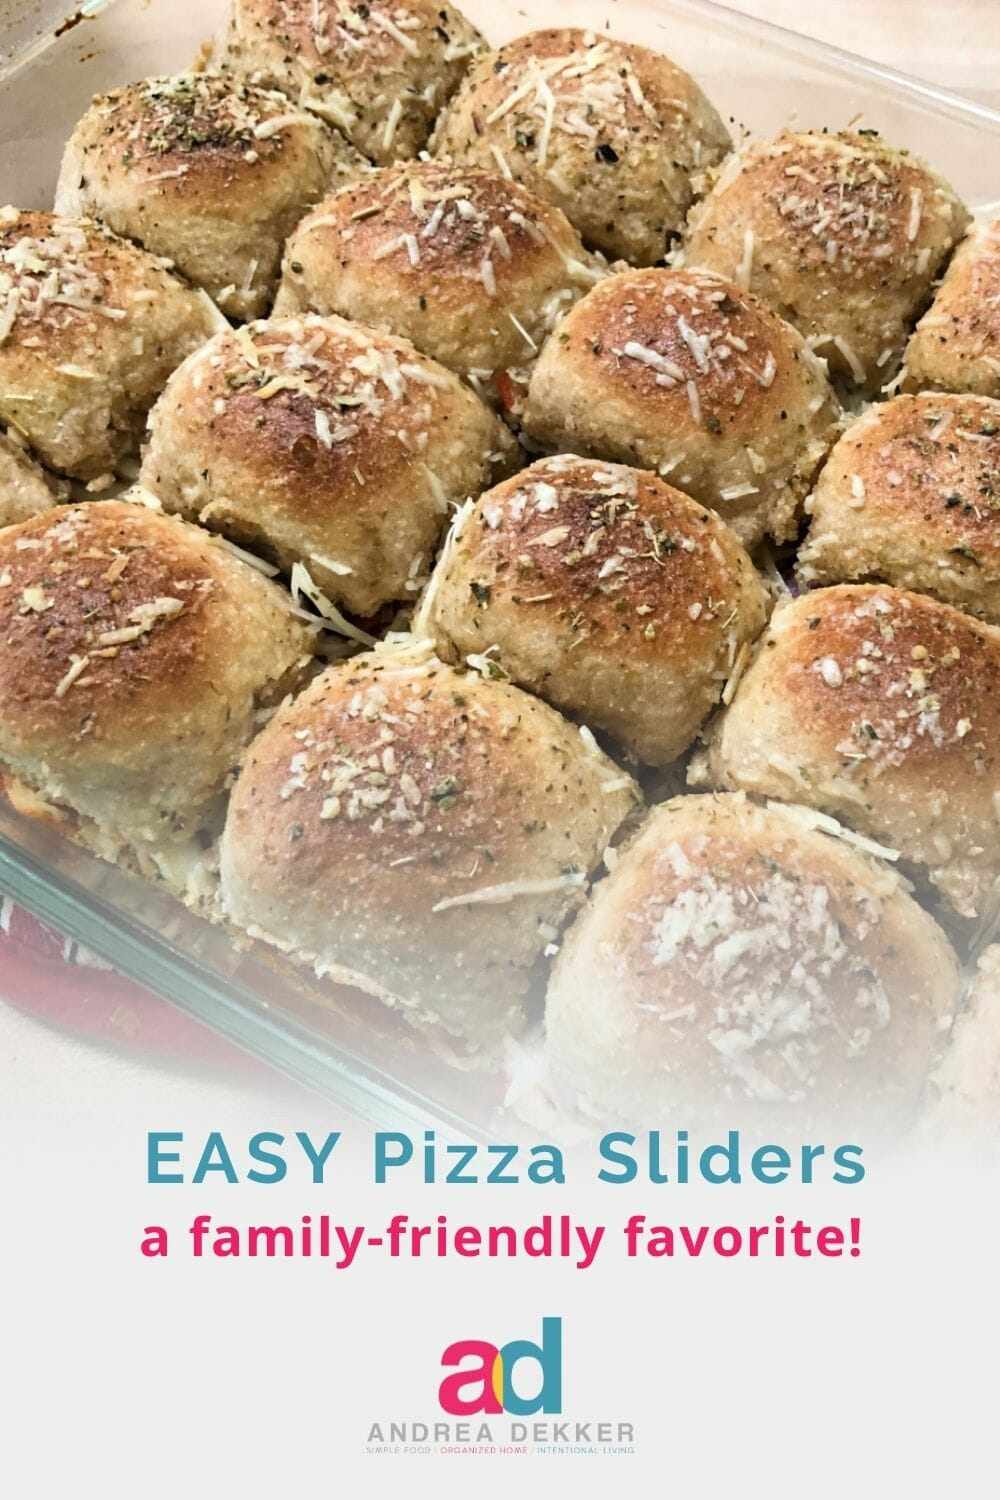 This easy recipe for pizza sliders is sure to go over well with your tribe. Whether you need a quick weeknight meal or fun finger food for the big game, pizza sliders will do the trick. via @andreadekker